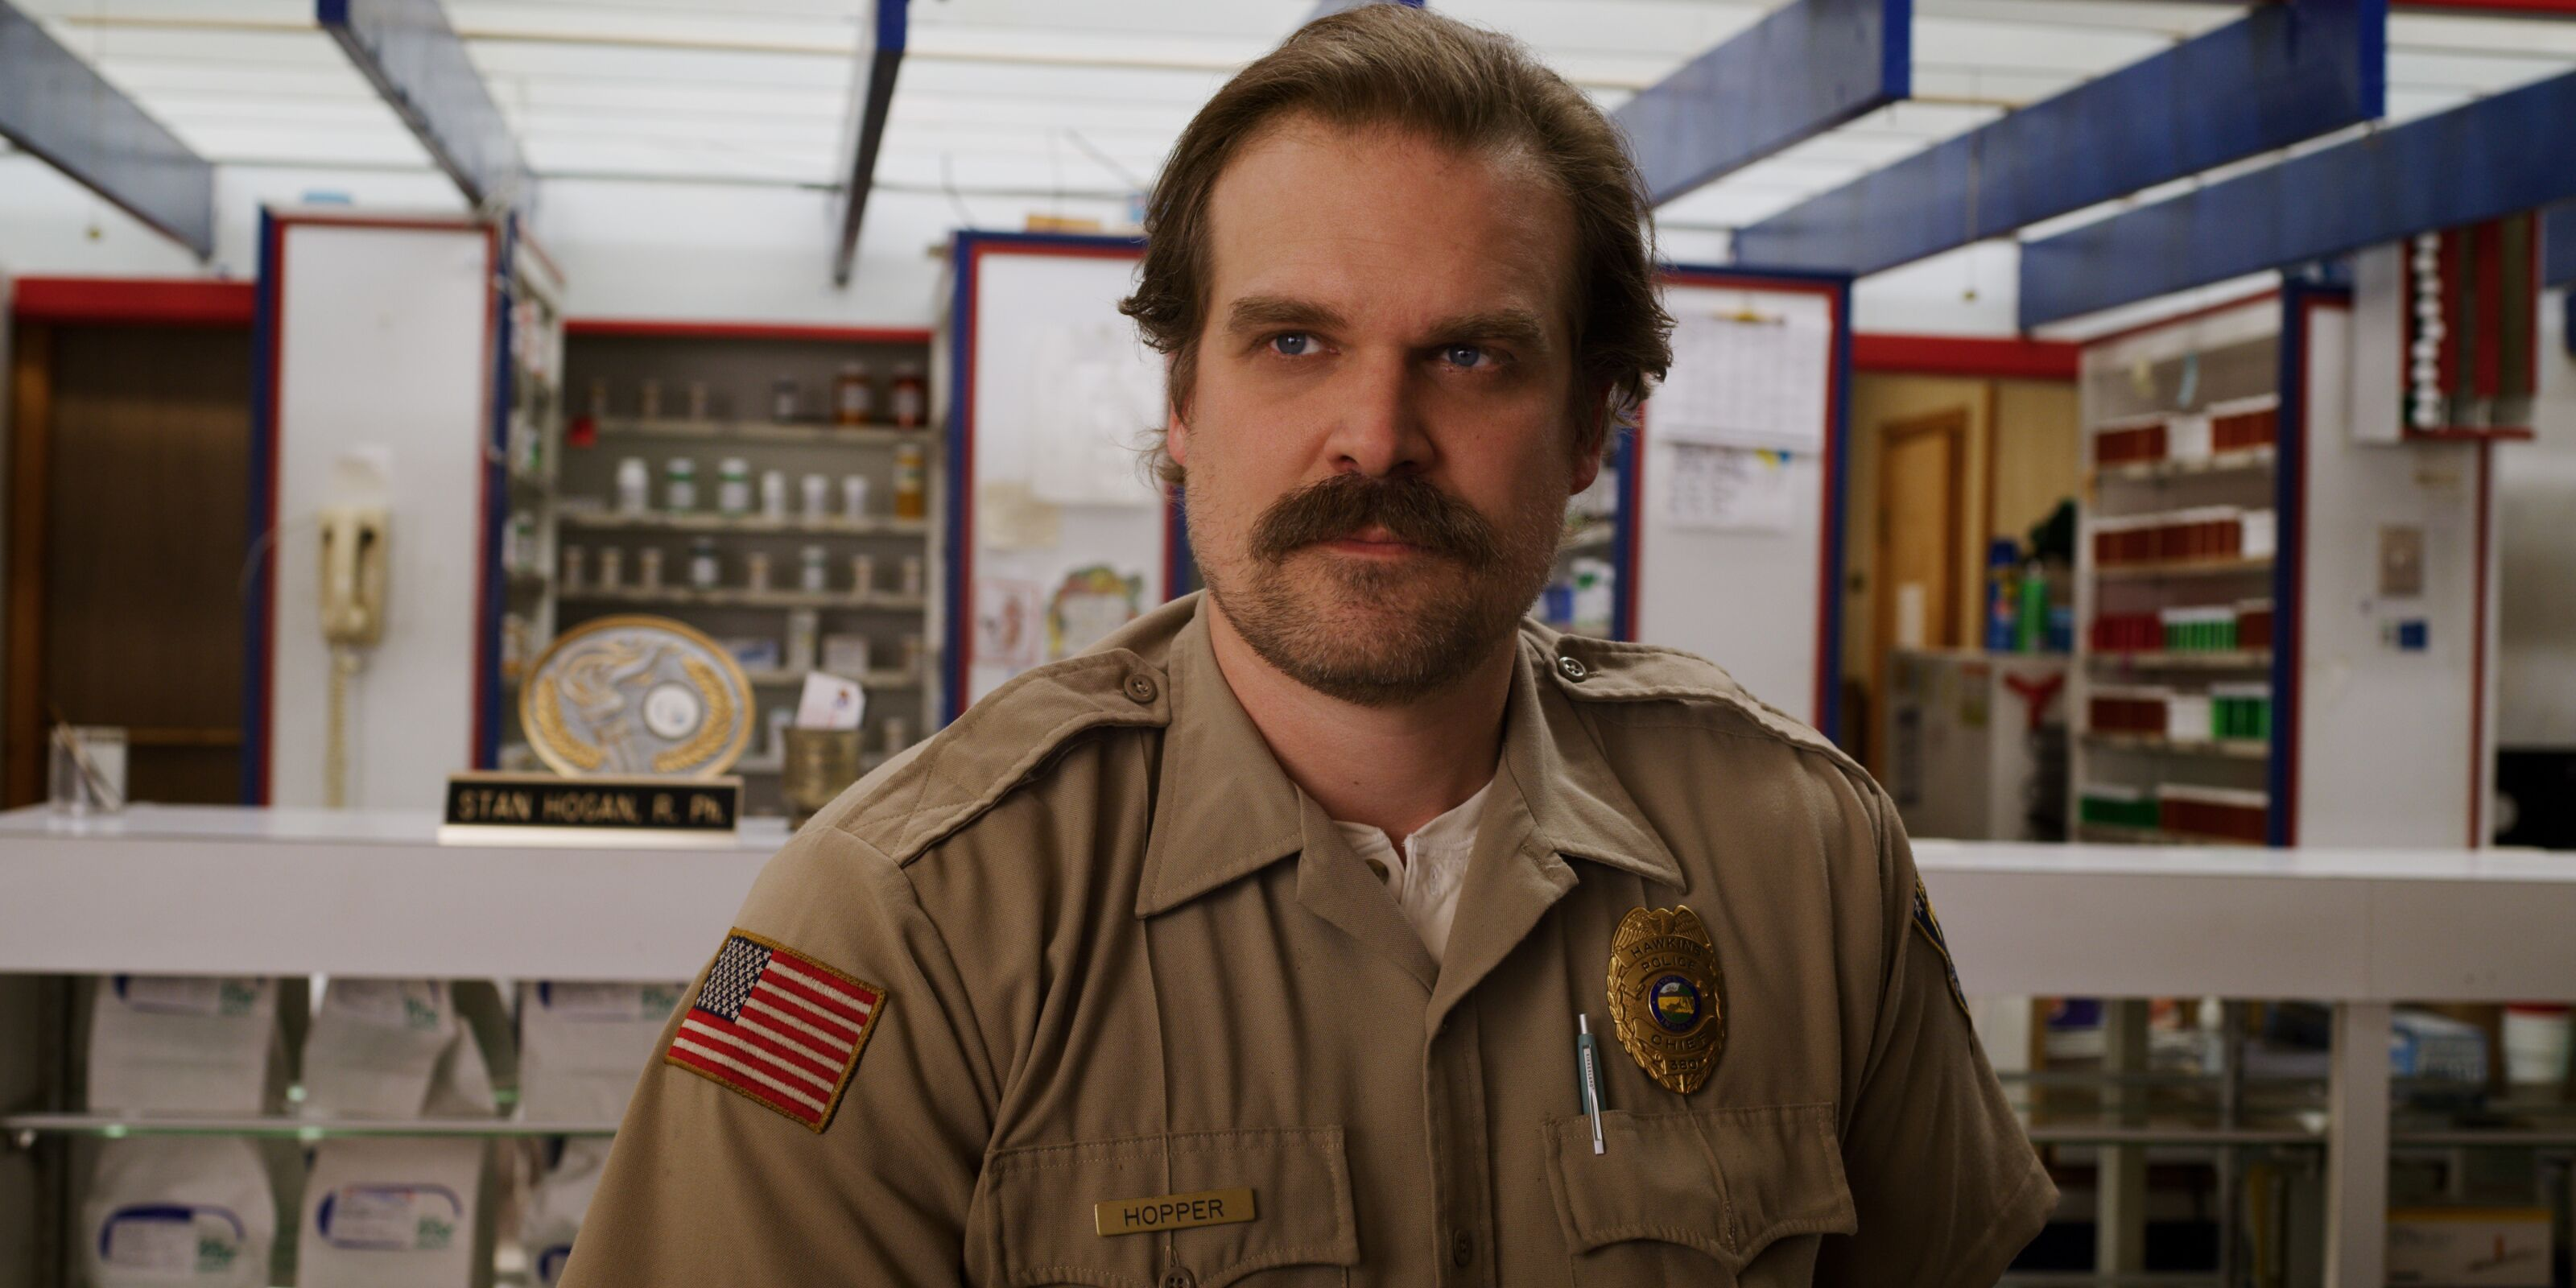 This Stranger Things 4 set photo has fans theorizing about Hopper again